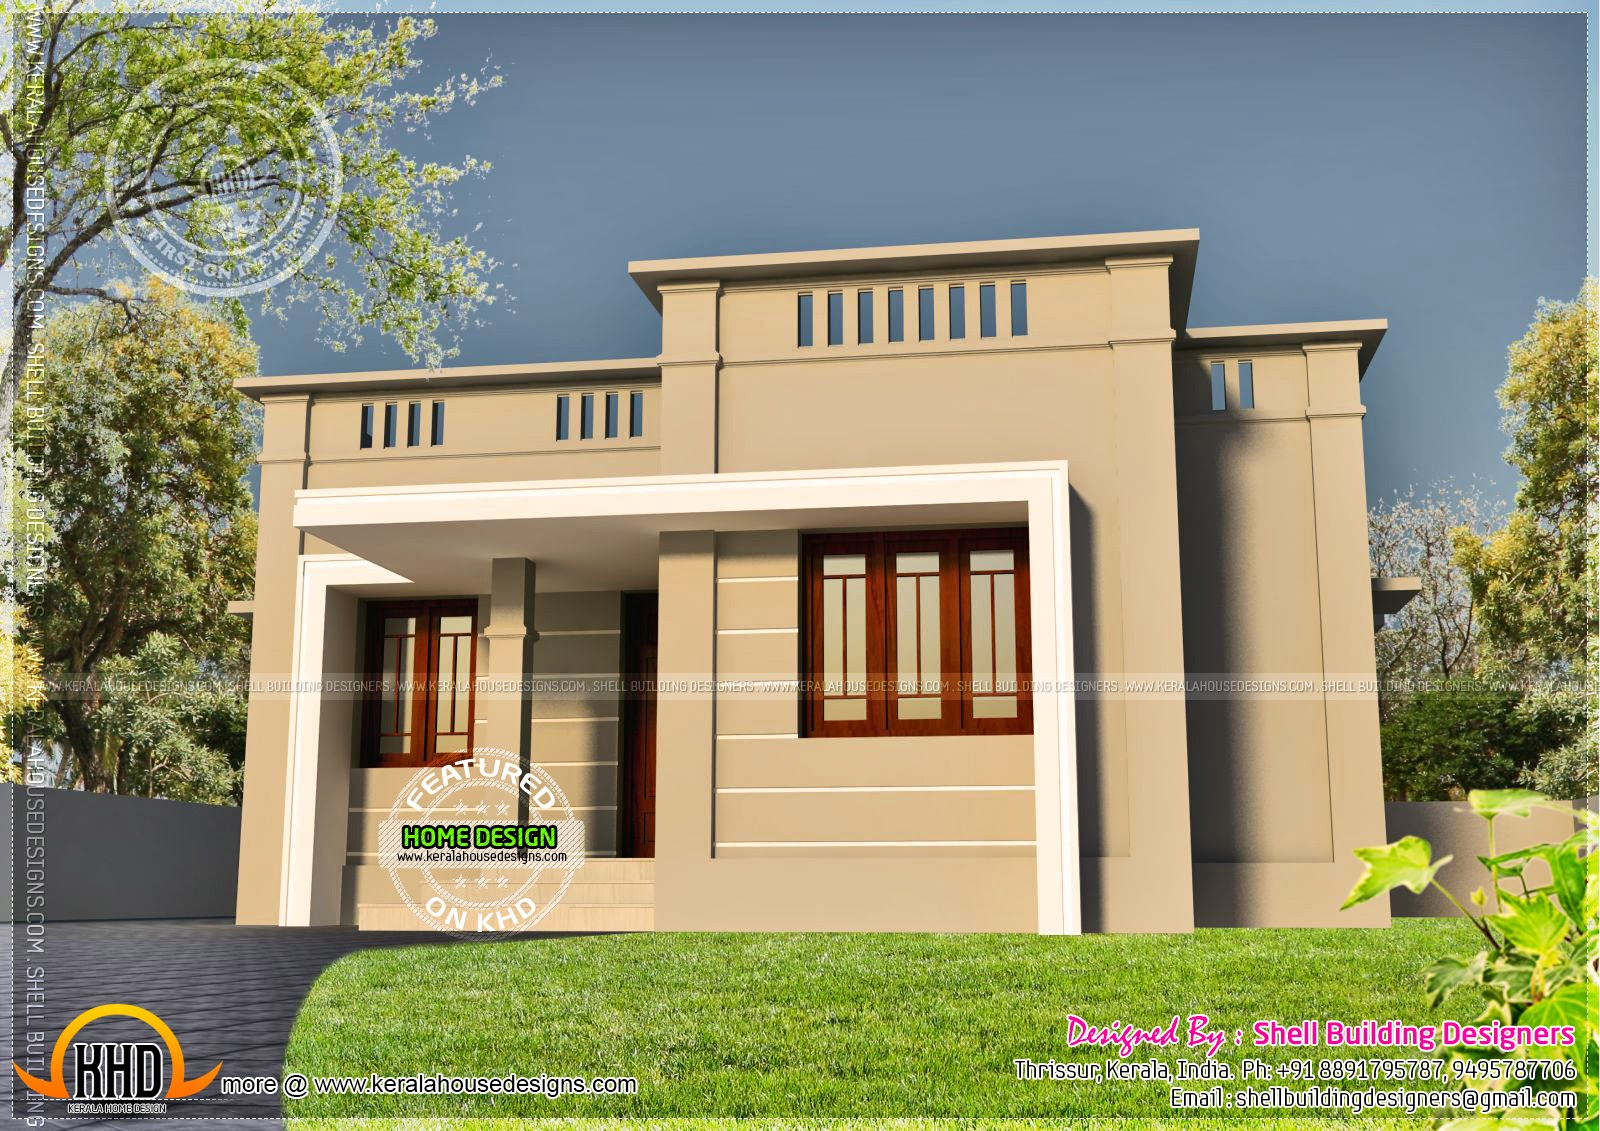 Very small house exterior kerala home design and floor plans for Small home outside design